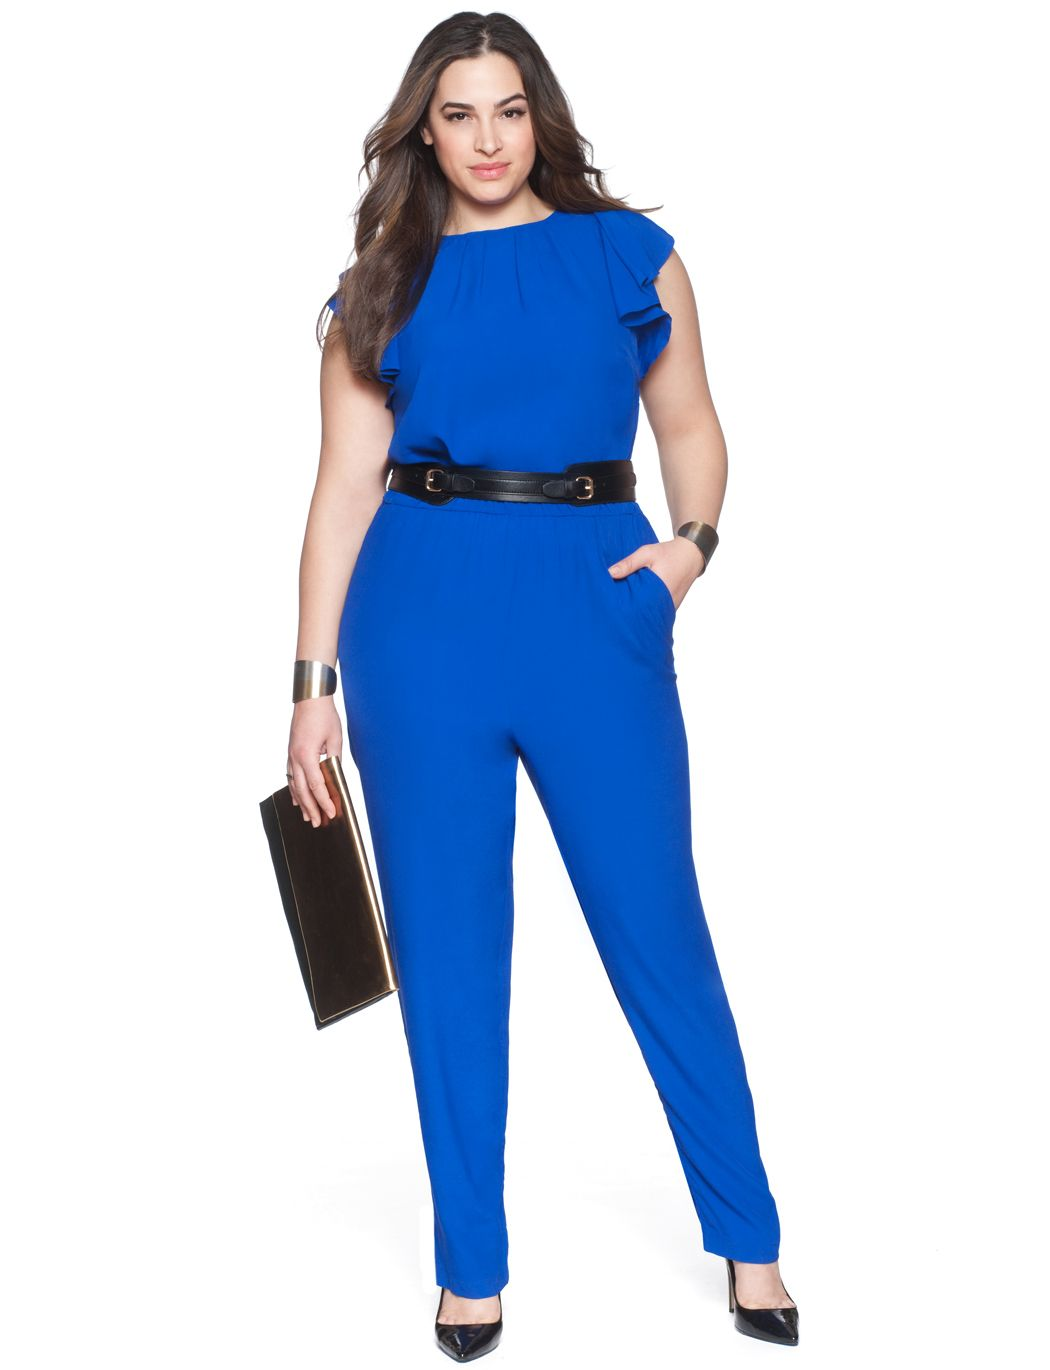 23 Plus Size Wedding Guest Outfits To Dazzle In Whether You Have Plus Size Jumpsuit Plus Size Wedding Guest Outfits Plus Size Clothing Online